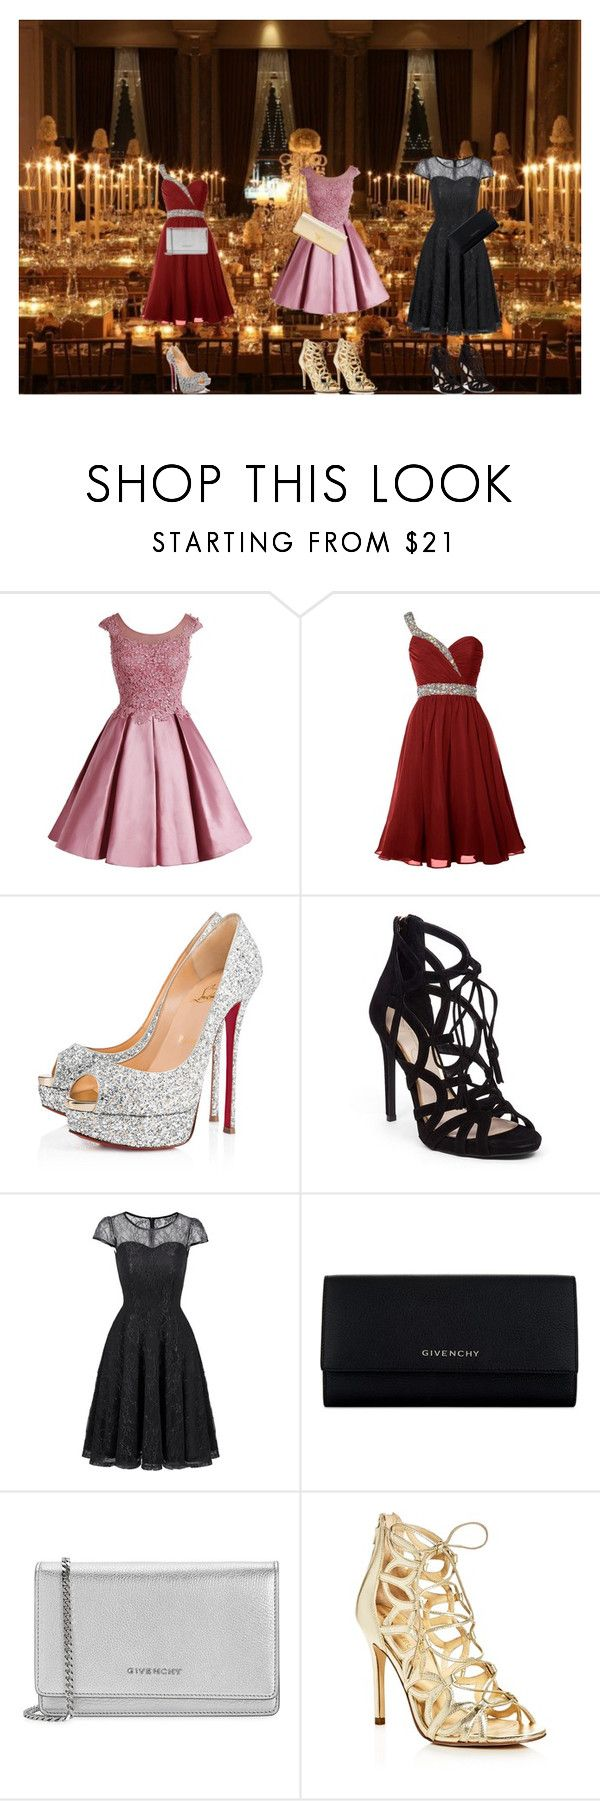 """""""3 Girls and a Cocktail Party"""" by christianeberha ❤ liked on Polyvore featuring Christian Louboutin, Jessica Simpson, Givenchy, Ivanka Trump and Prada"""